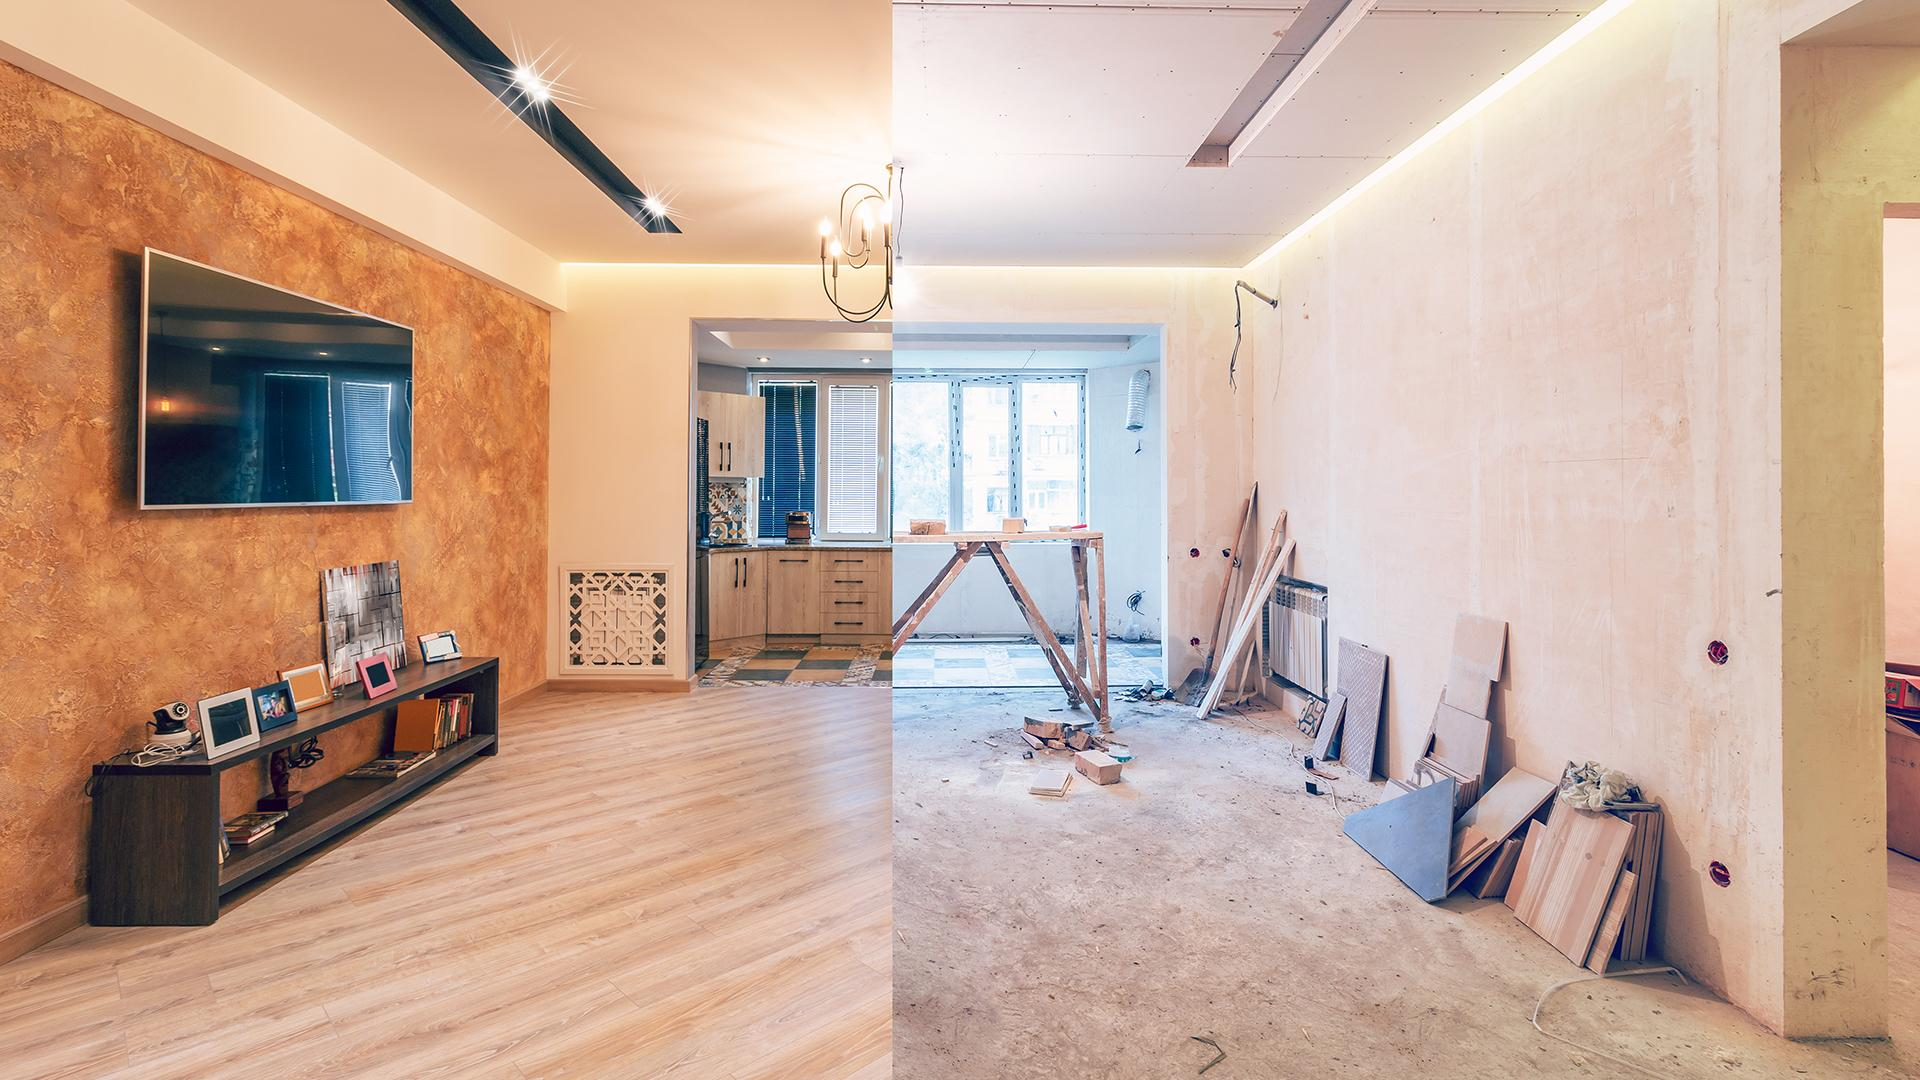 Home Renovation Why Is It So Important   Concept And Home Decoration